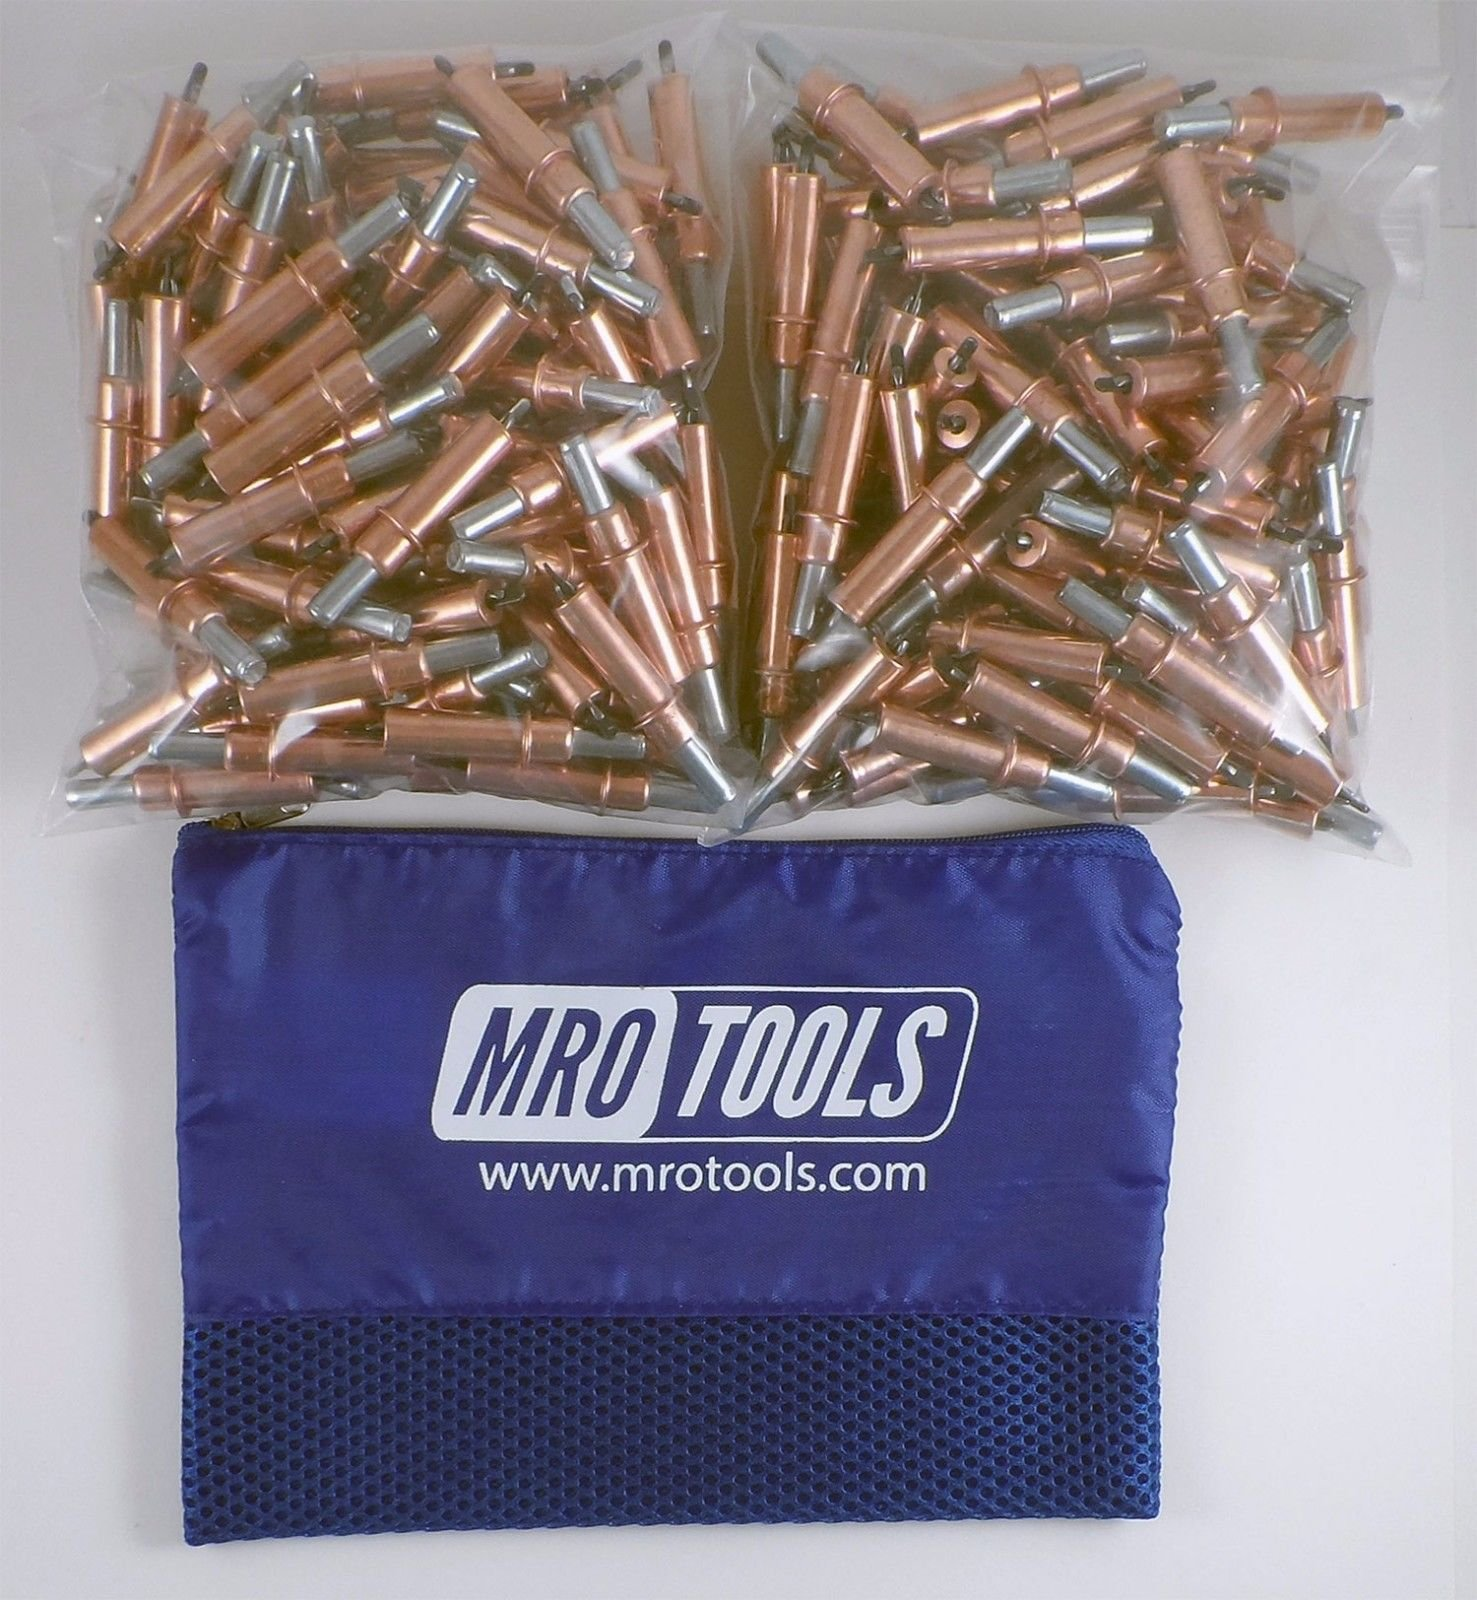 200 1/8 Cleco Sheet Metal Fasteners w/ Mesh Carry Bag (K2S200-1/8) by MRO Tools Cleco Fasteners